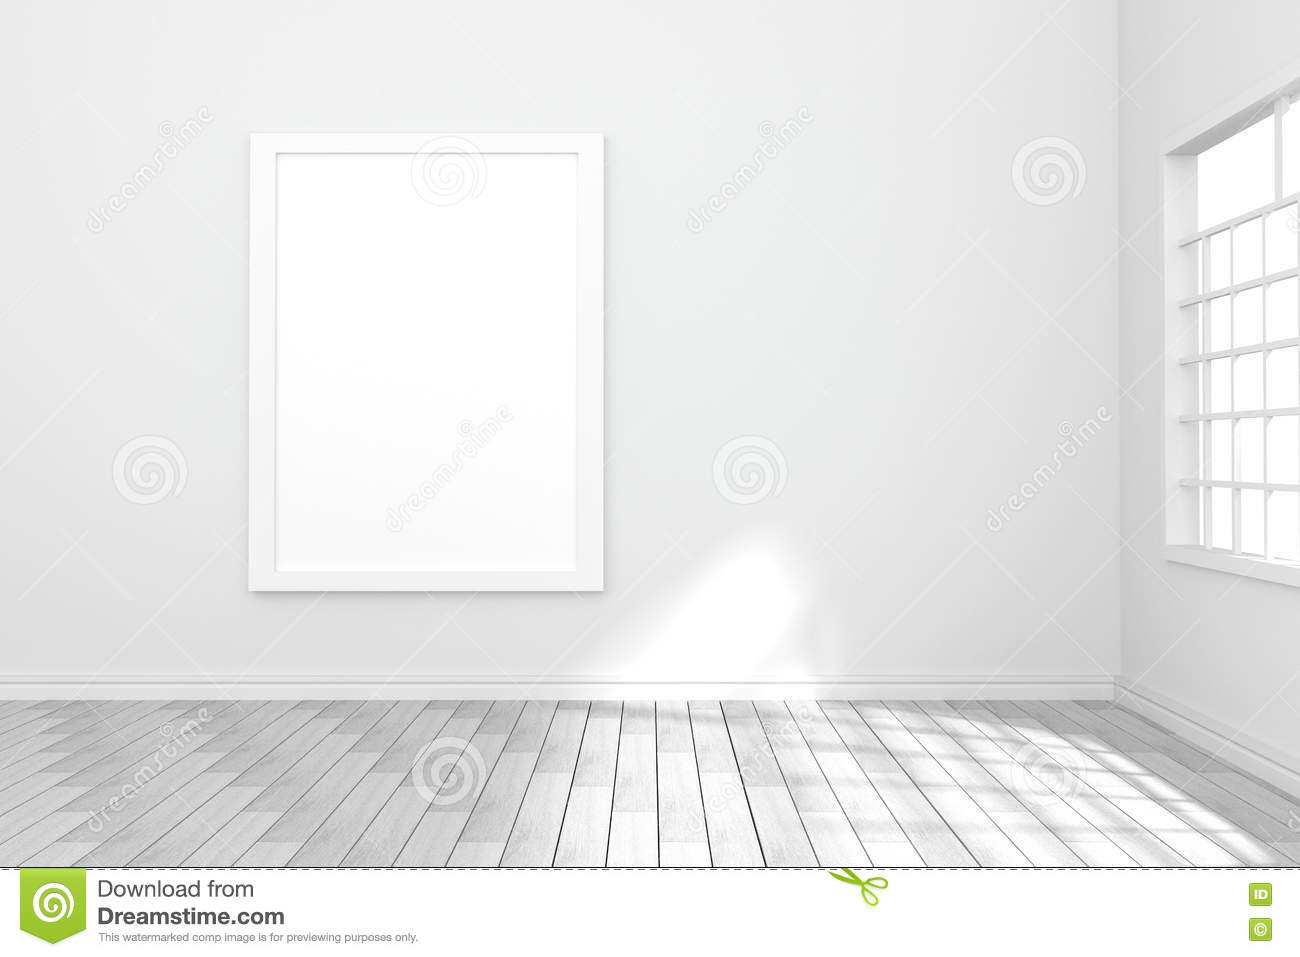 3d Rendering Illustration Of White Poster Hanging On The Wall In